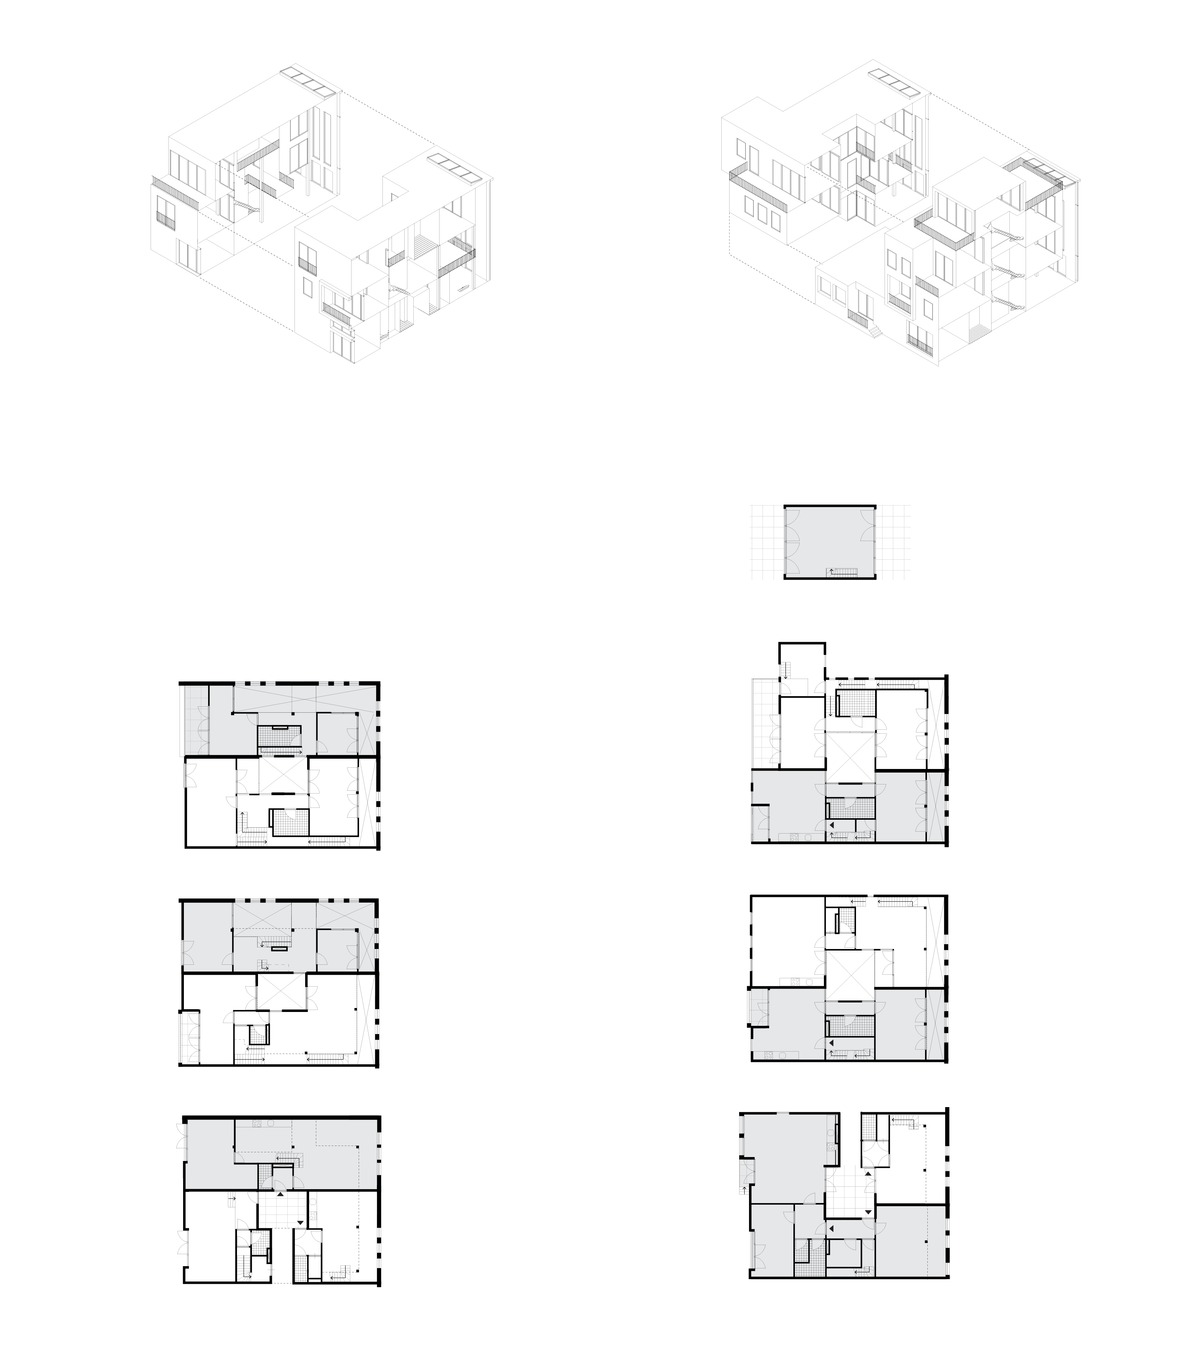 The Gamechanging architect, re-used carpentry shed - dwelling typologies